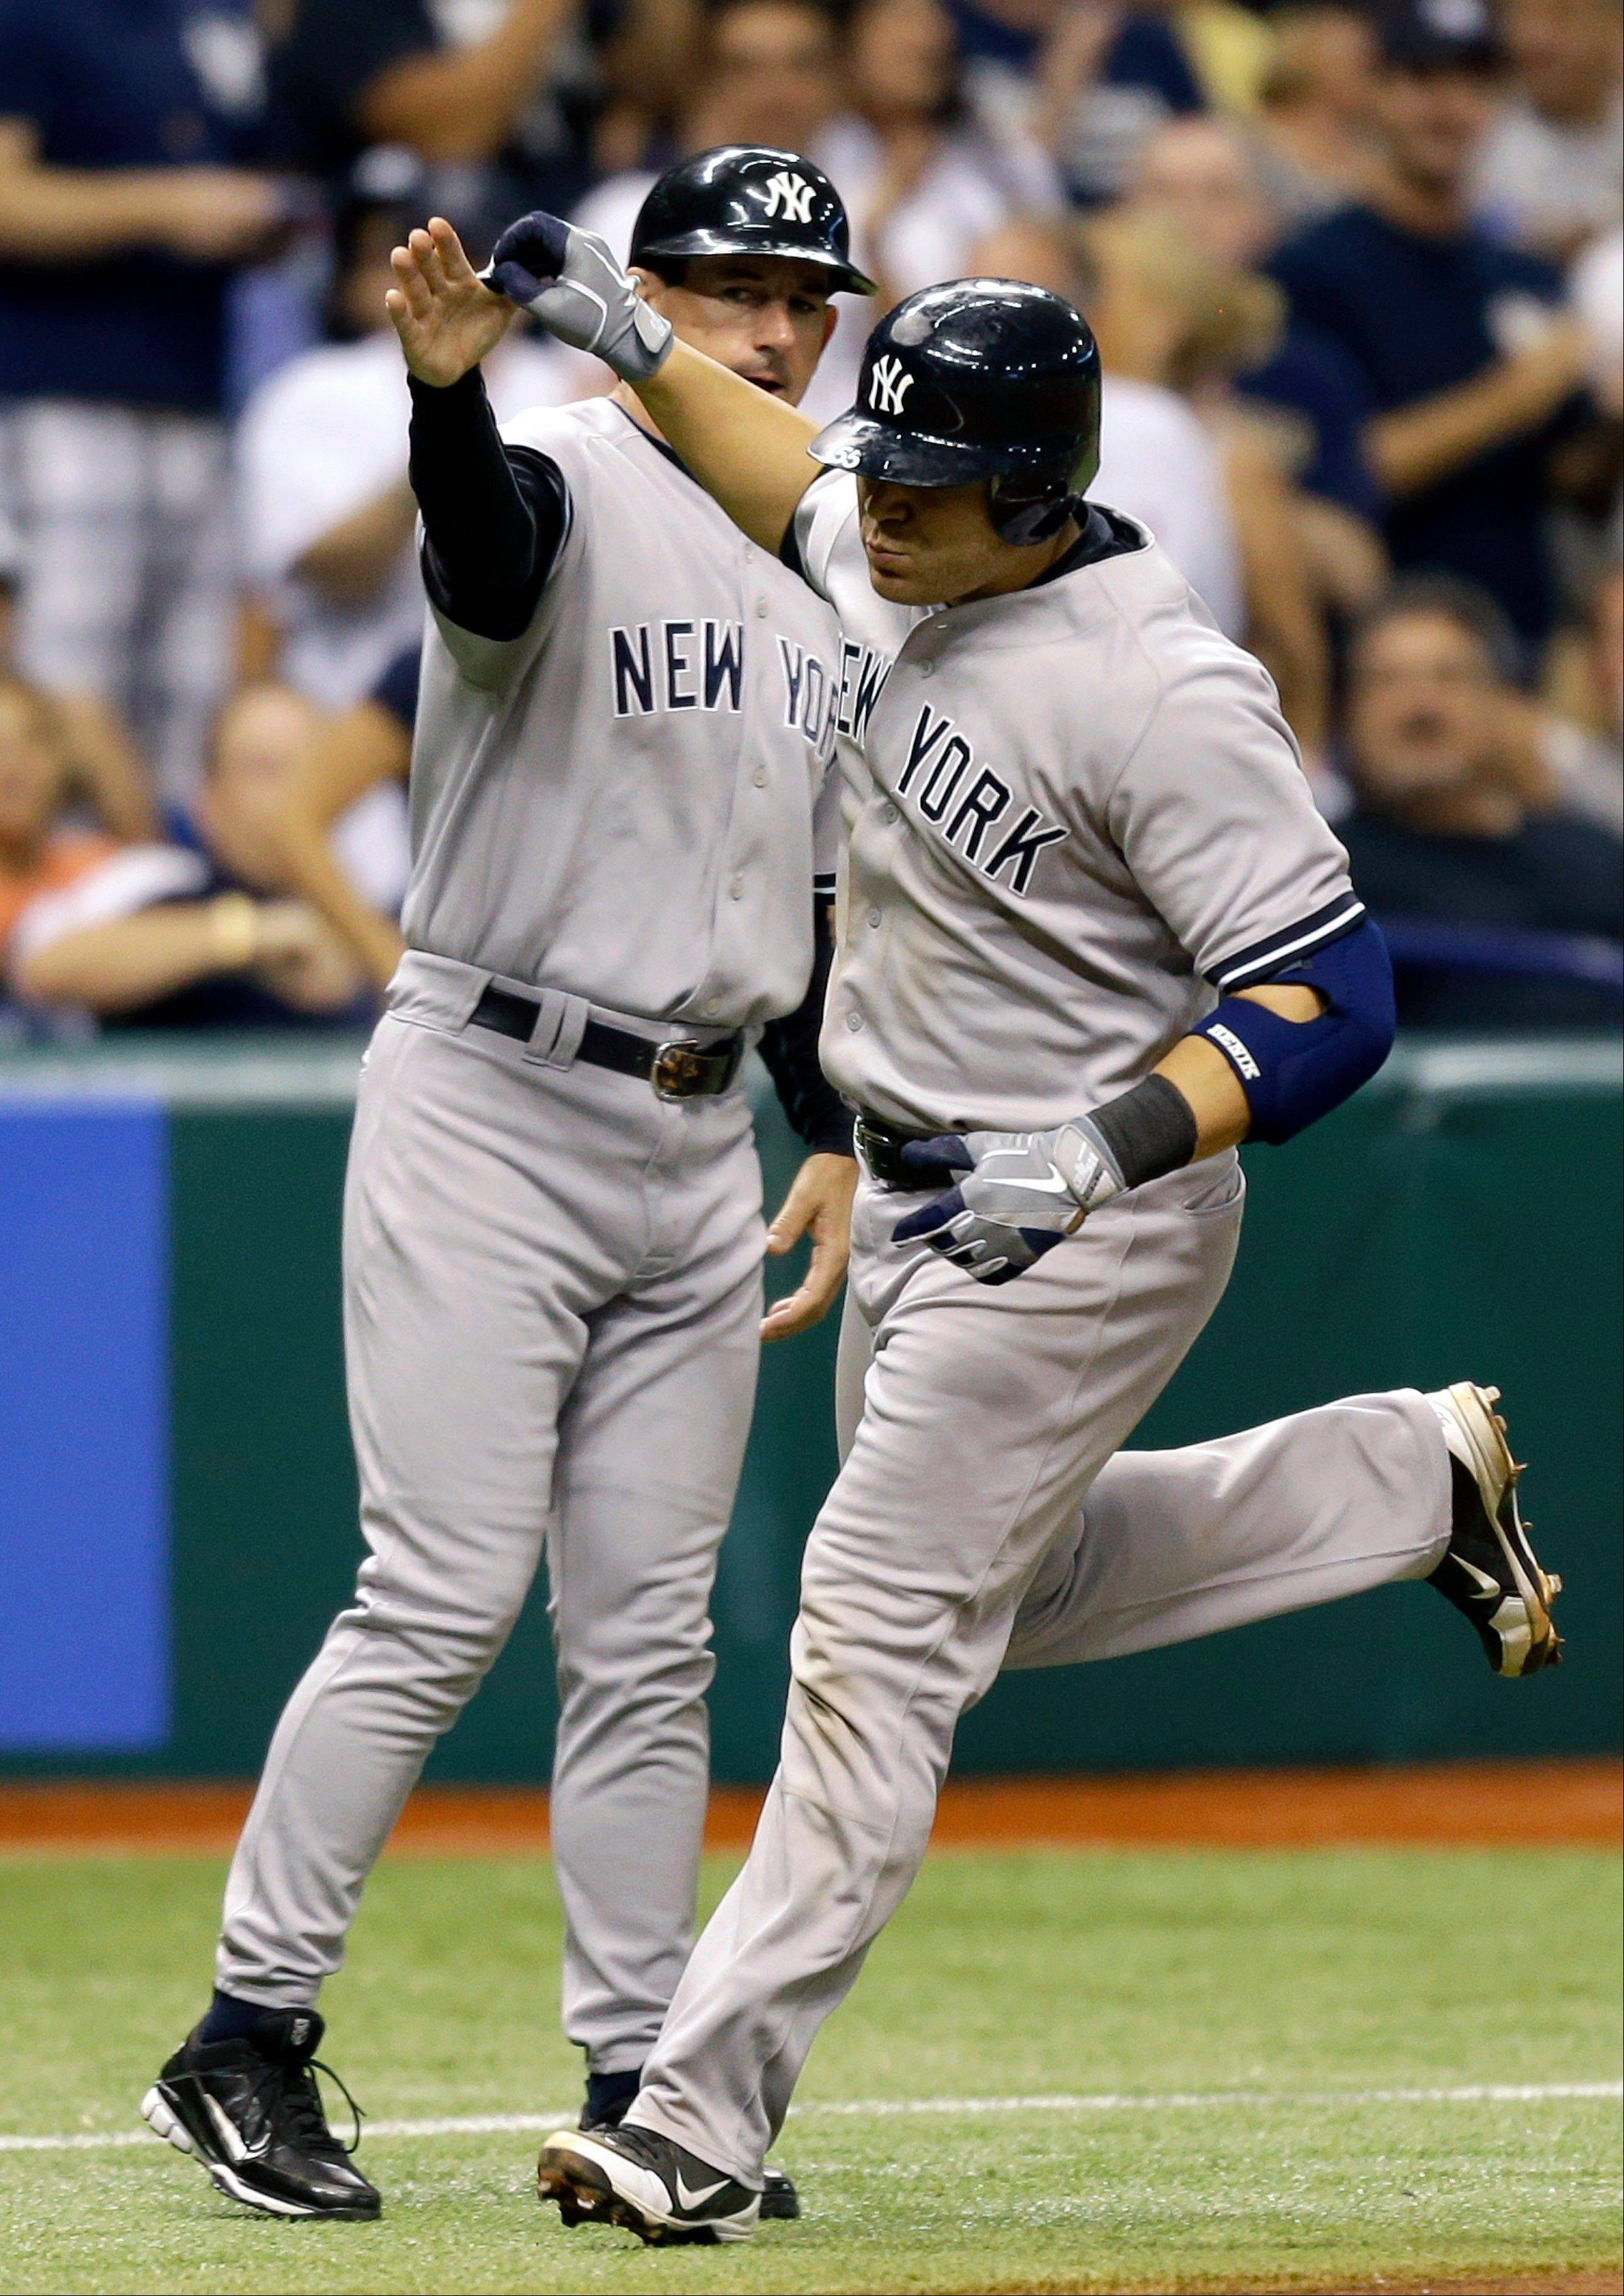 The Yankees� Russell Martin, right, high-fives third base coach Rob Thomson after hitting a sixth-inning home run off Tampa Bay Rays starting pitcher Matt Moore on Wednesday in St. Petersburg, Fla.